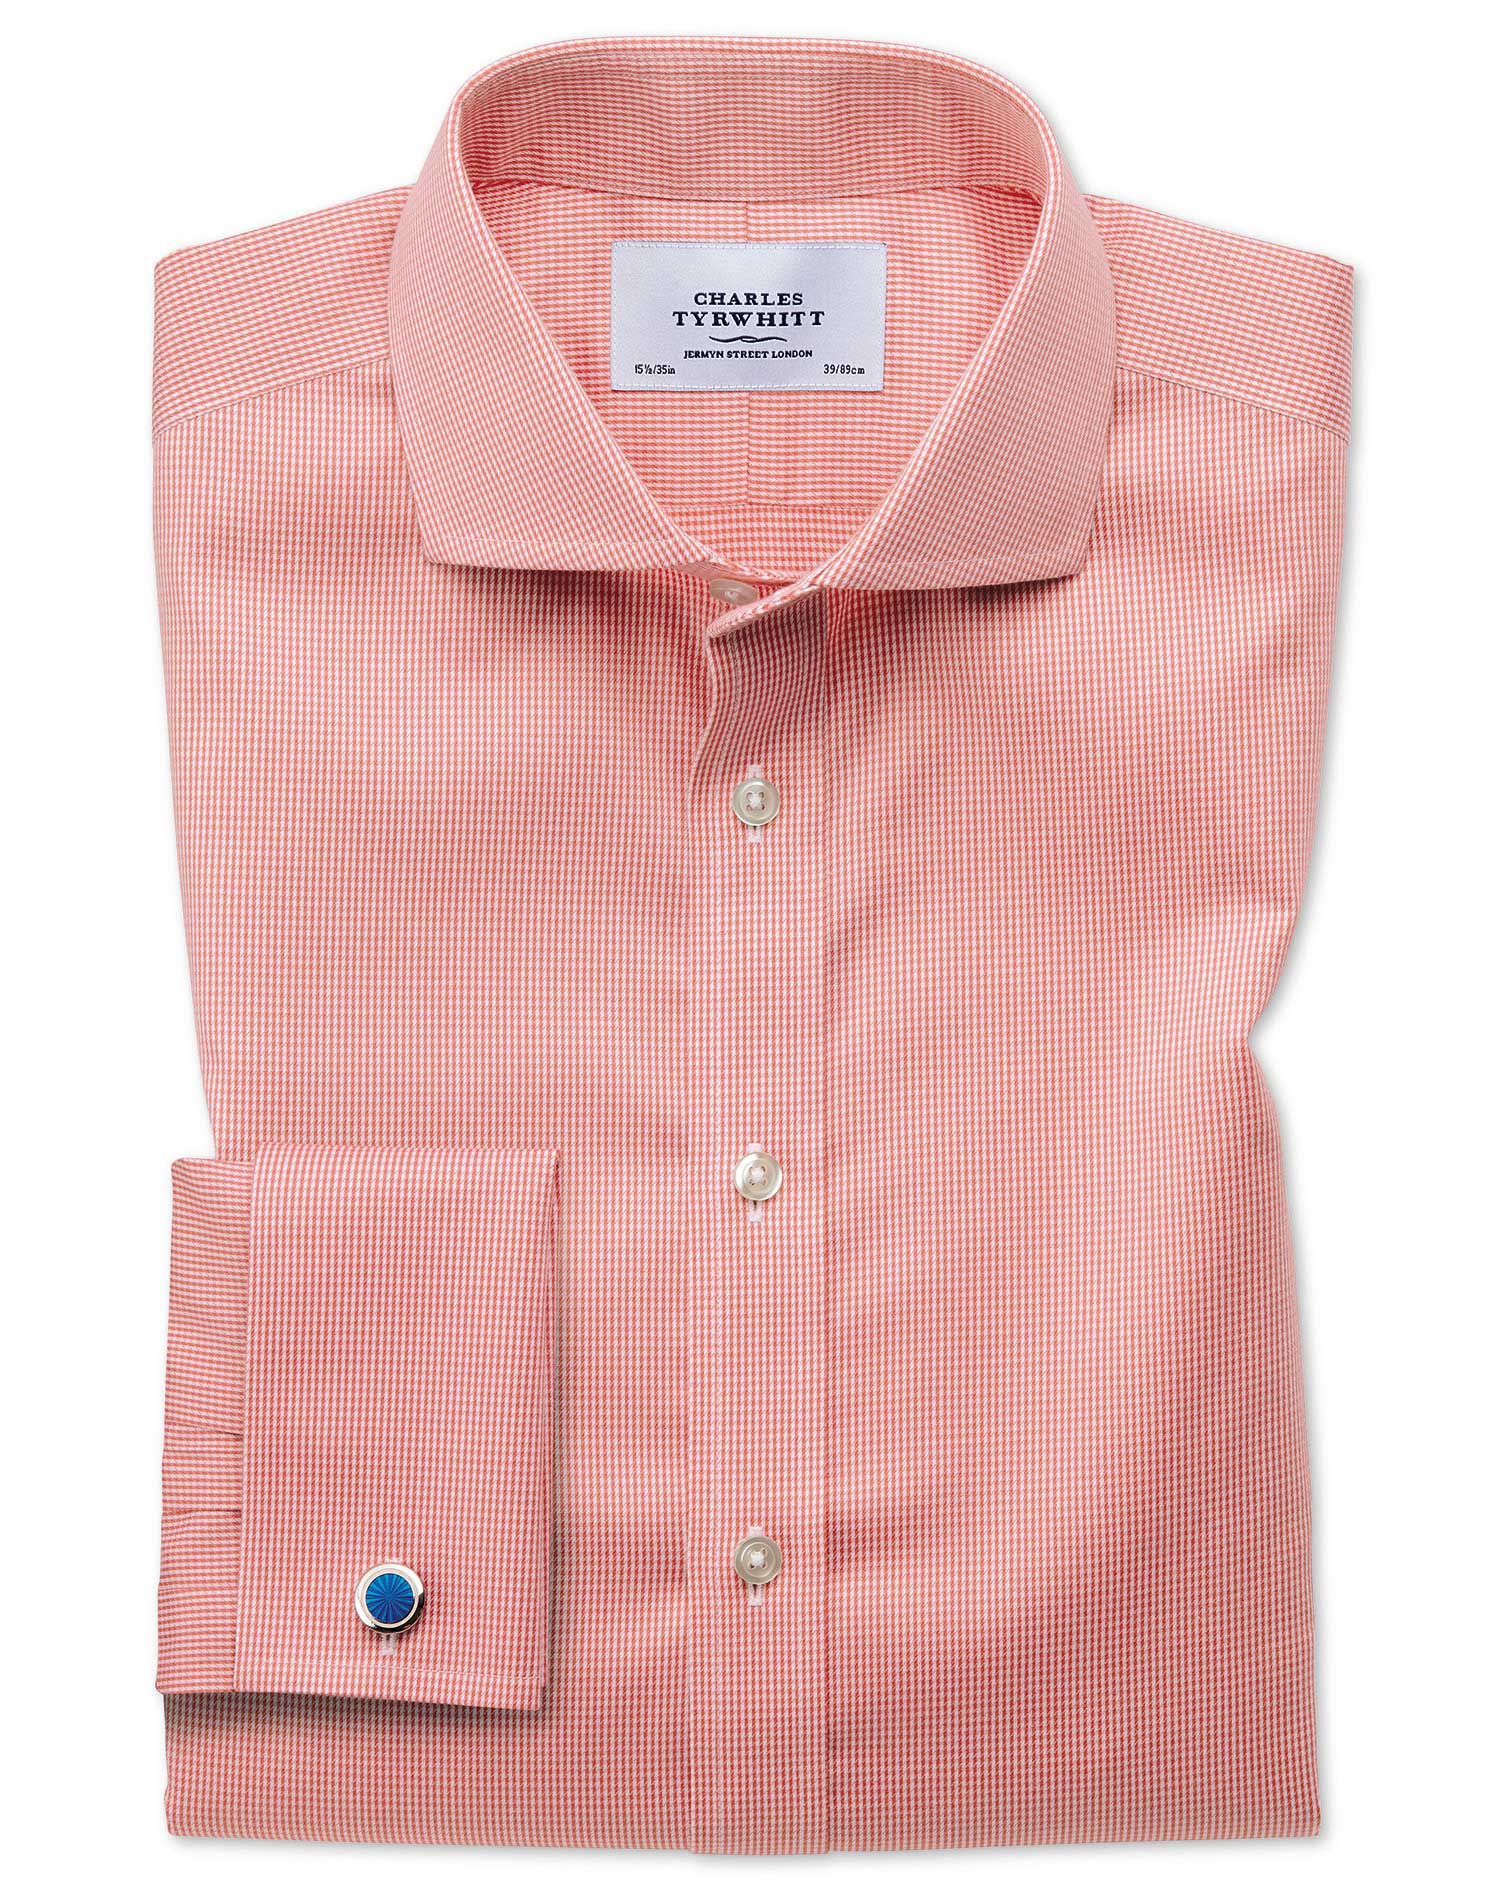 Slim Fit Cutaway Non-Iron Puppytooth Coral Cotton Formal Shirt Double Cuff Size 16/33 by Charles Tyr